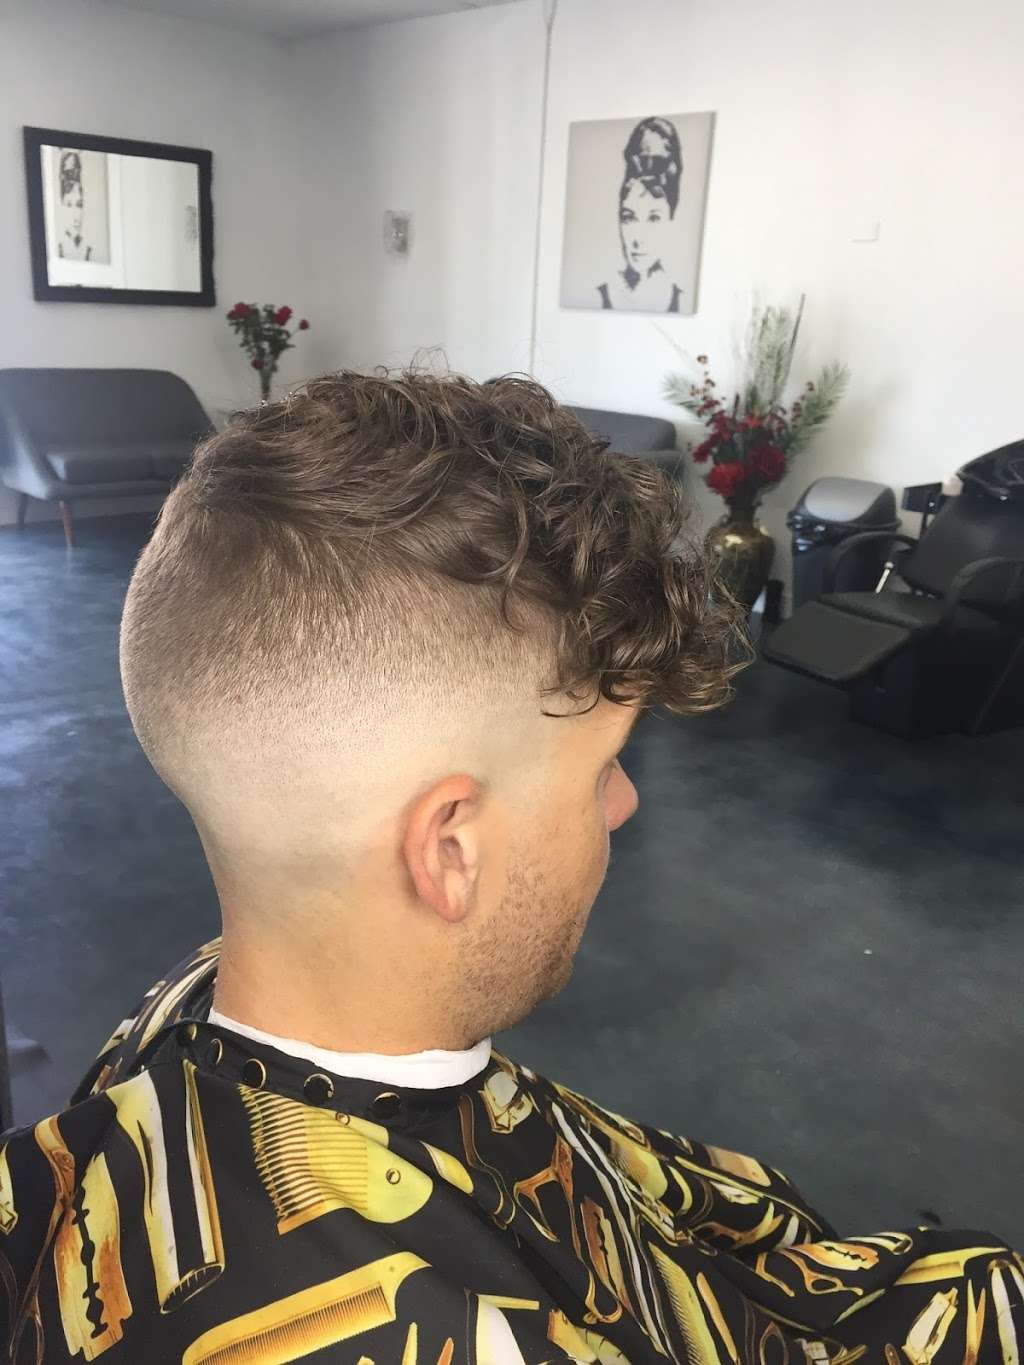 Studio G beauty salon & Barber shop - hair care  | Photo 1 of 10 | Address: 941 N Michillinda Ave, Pasadena, CA 91107, USA | Phone: (626) 510-6366